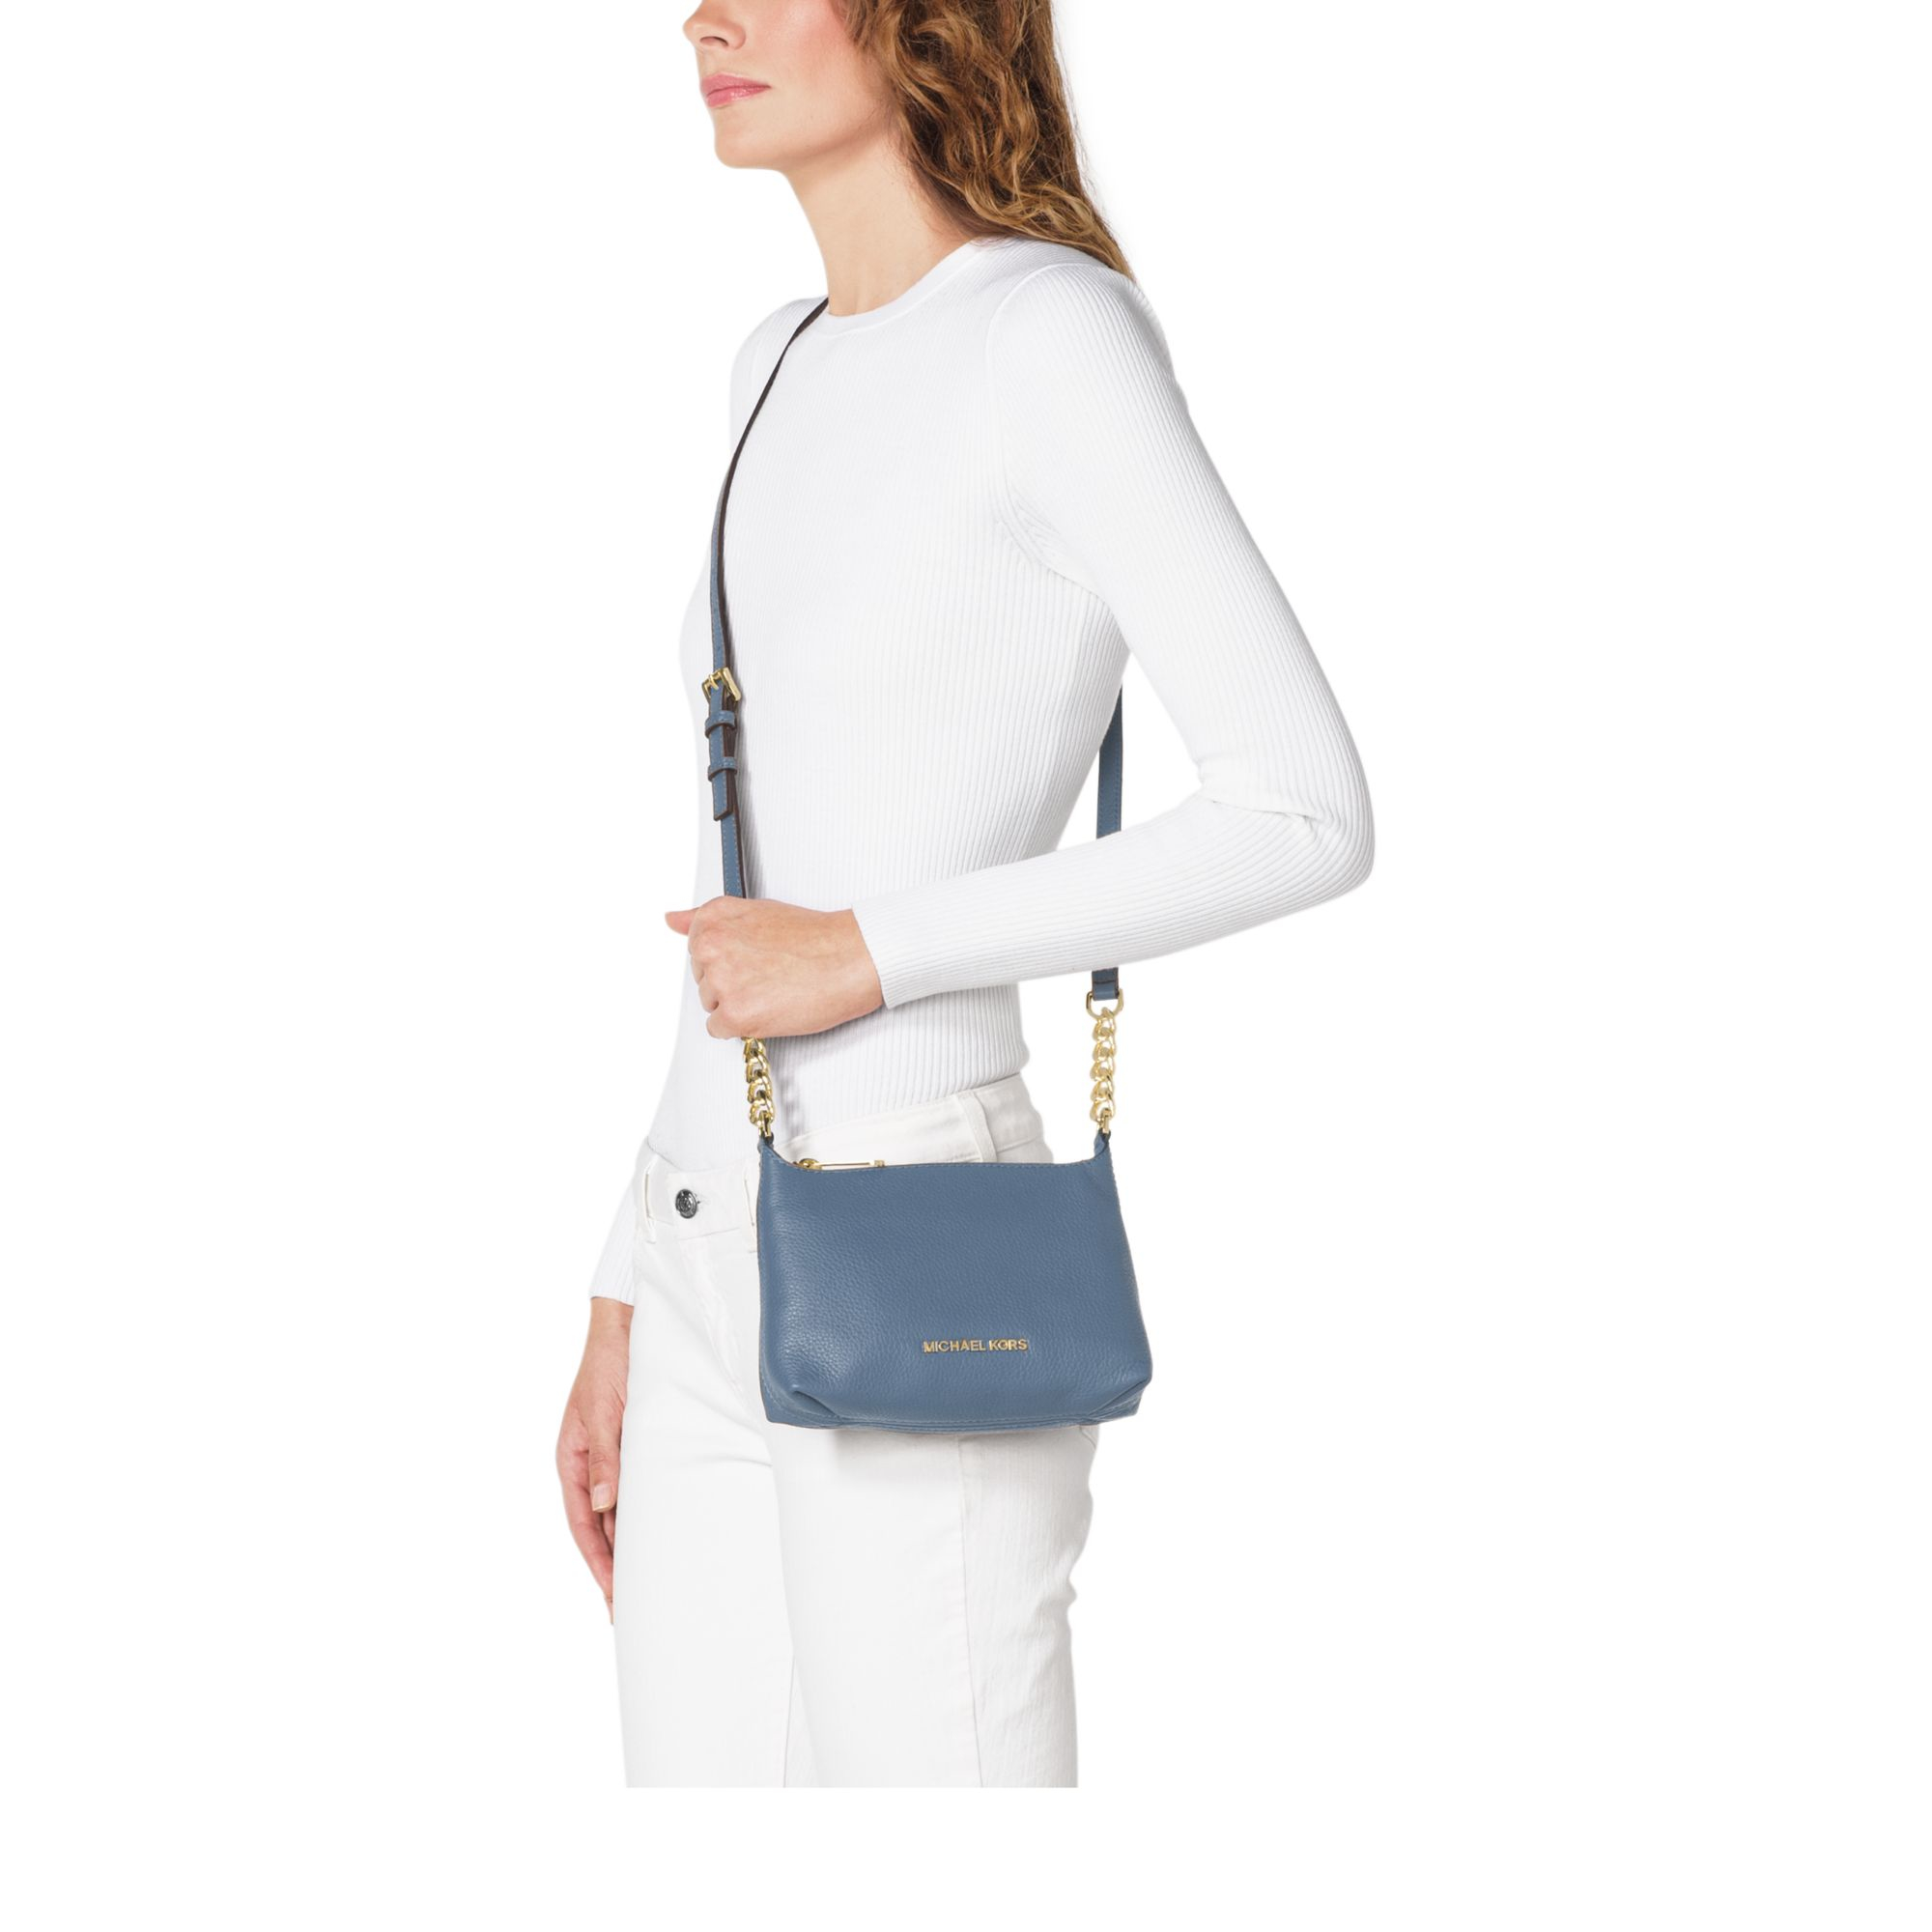 1c63a0479d Lyst - Michael Kors Bedford Leather Cross-Body Bag in Blue